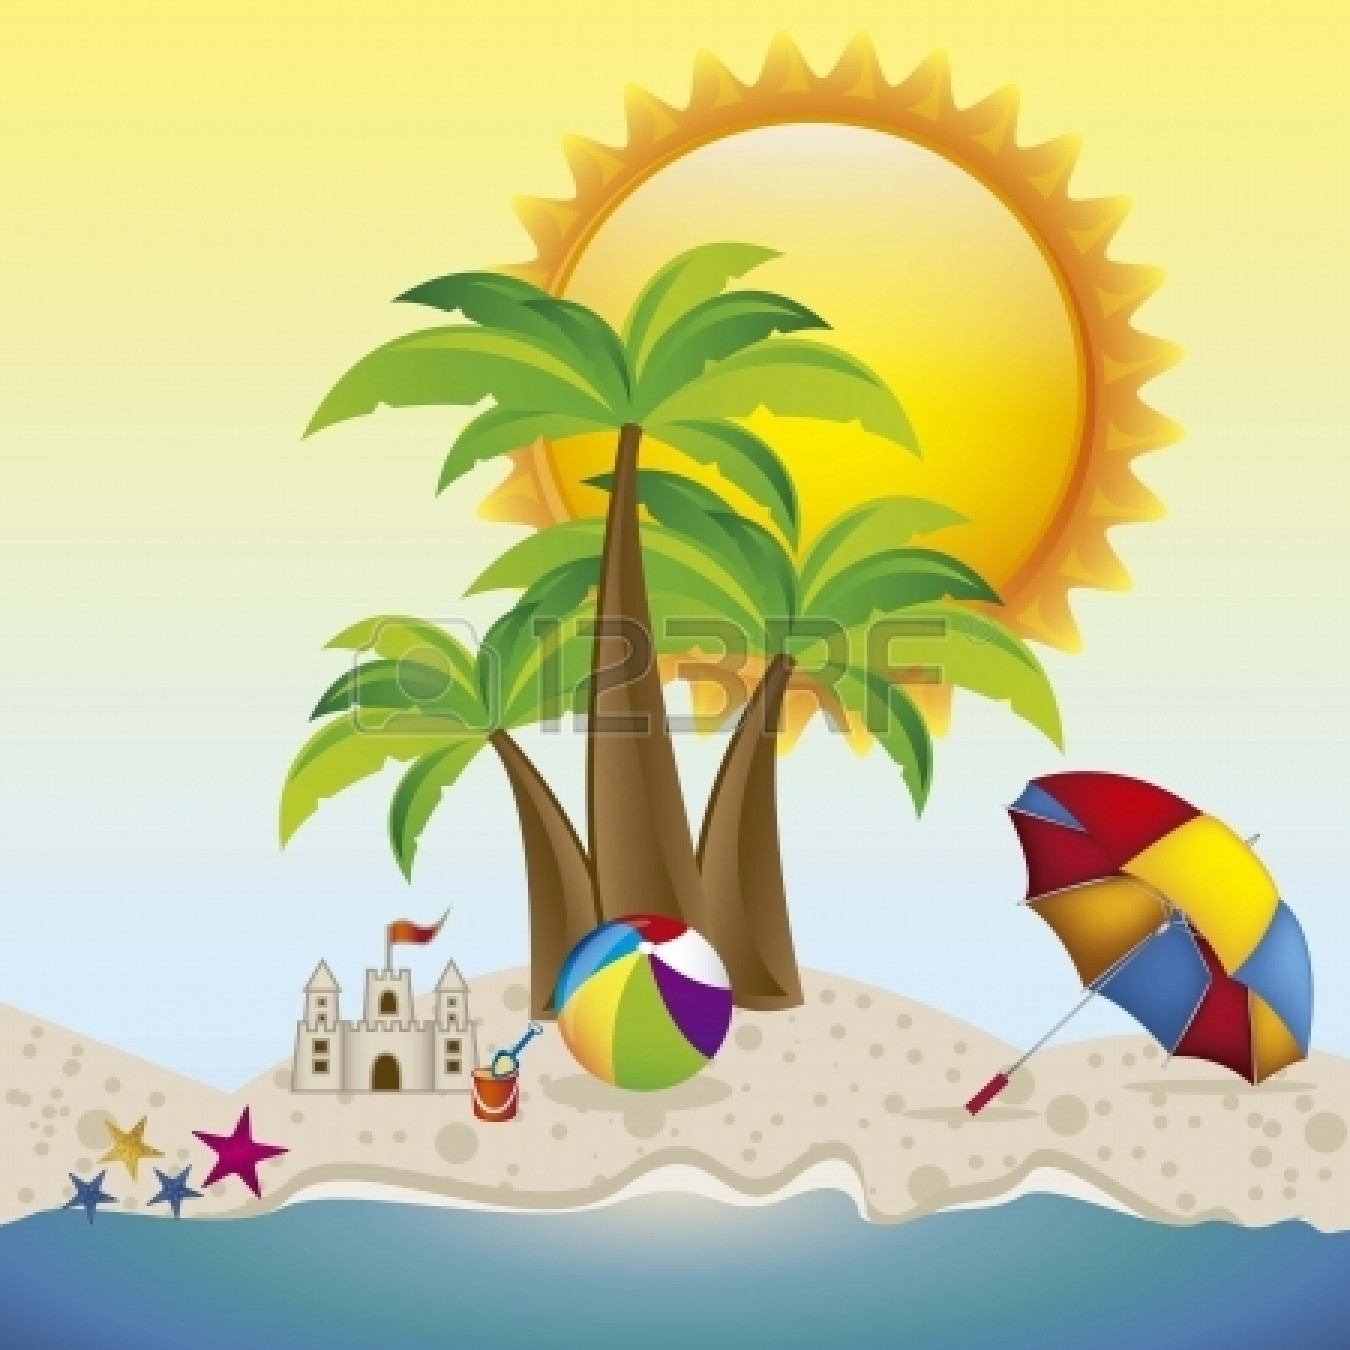 Summer backgrounds clipart image free library Summer Background Clipart | Free download best Summer ... image free library